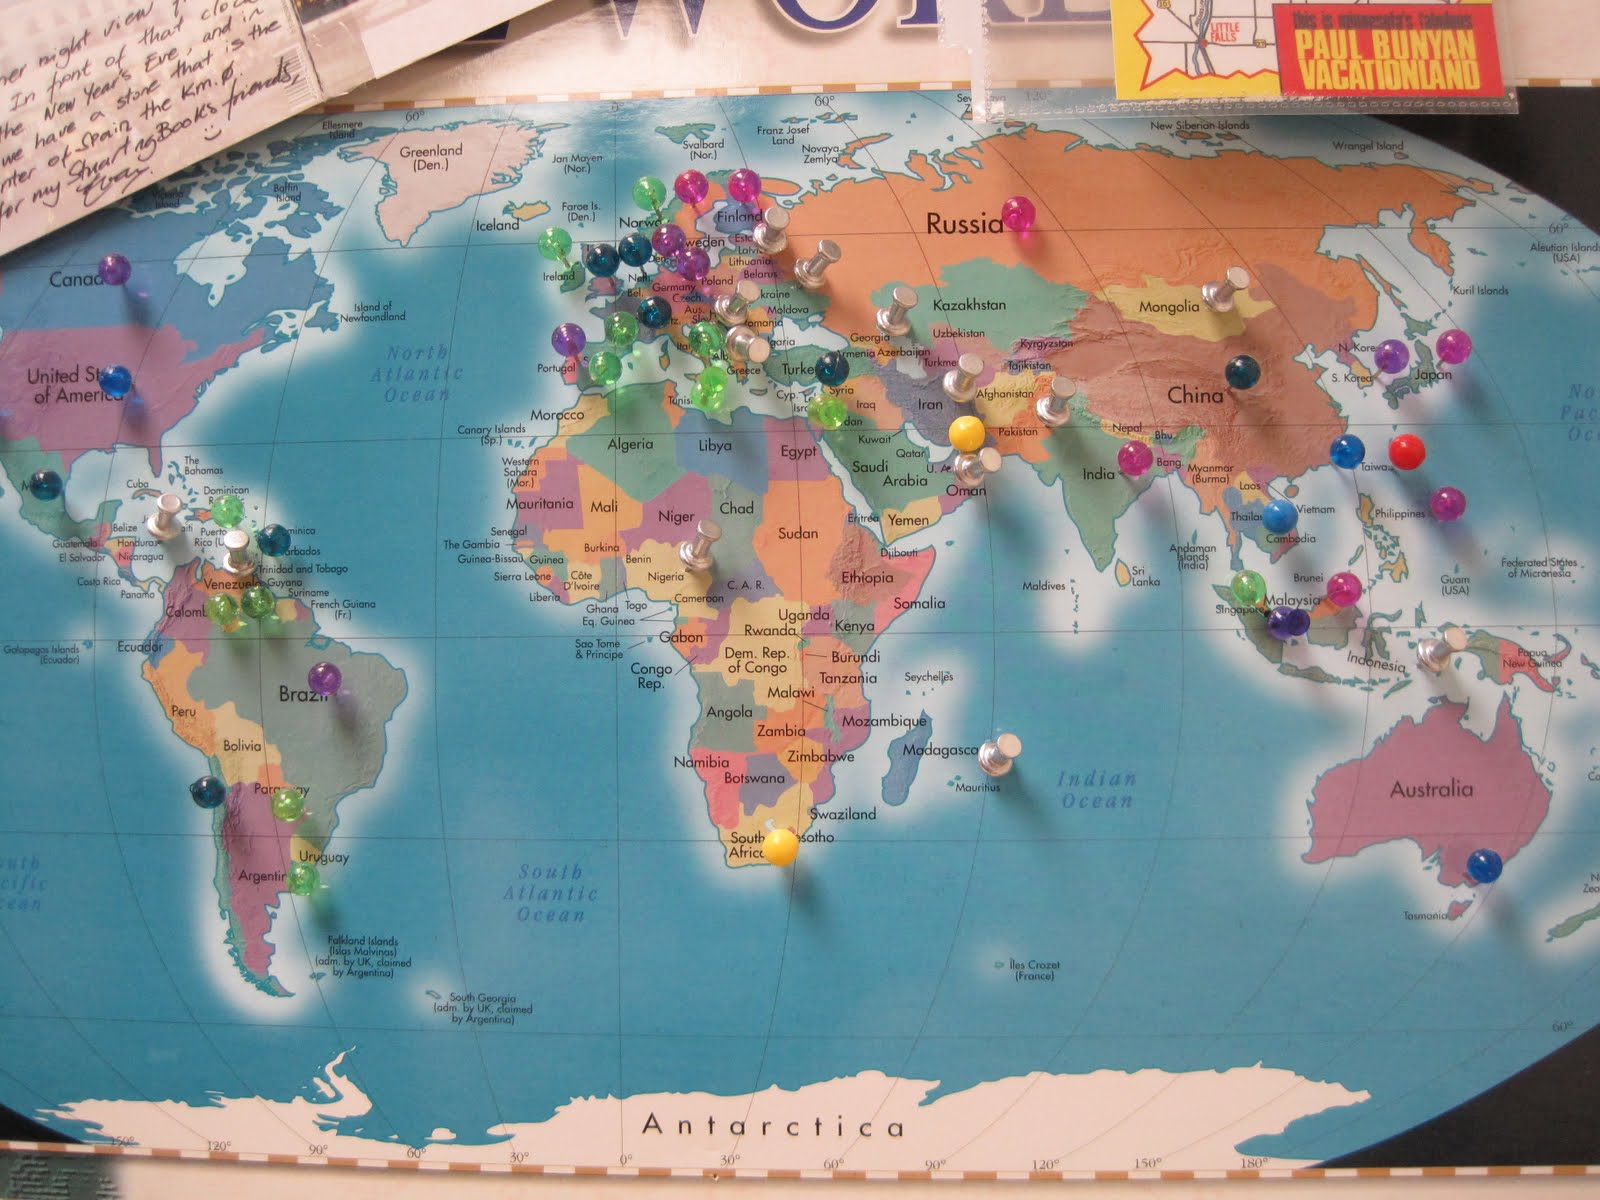 Behind the scenes at stuart ng books welcome reader 26000 page bulgaria on oct 28th now 83 countries counting have visited whats here for so many to see gumiabroncs Image collections